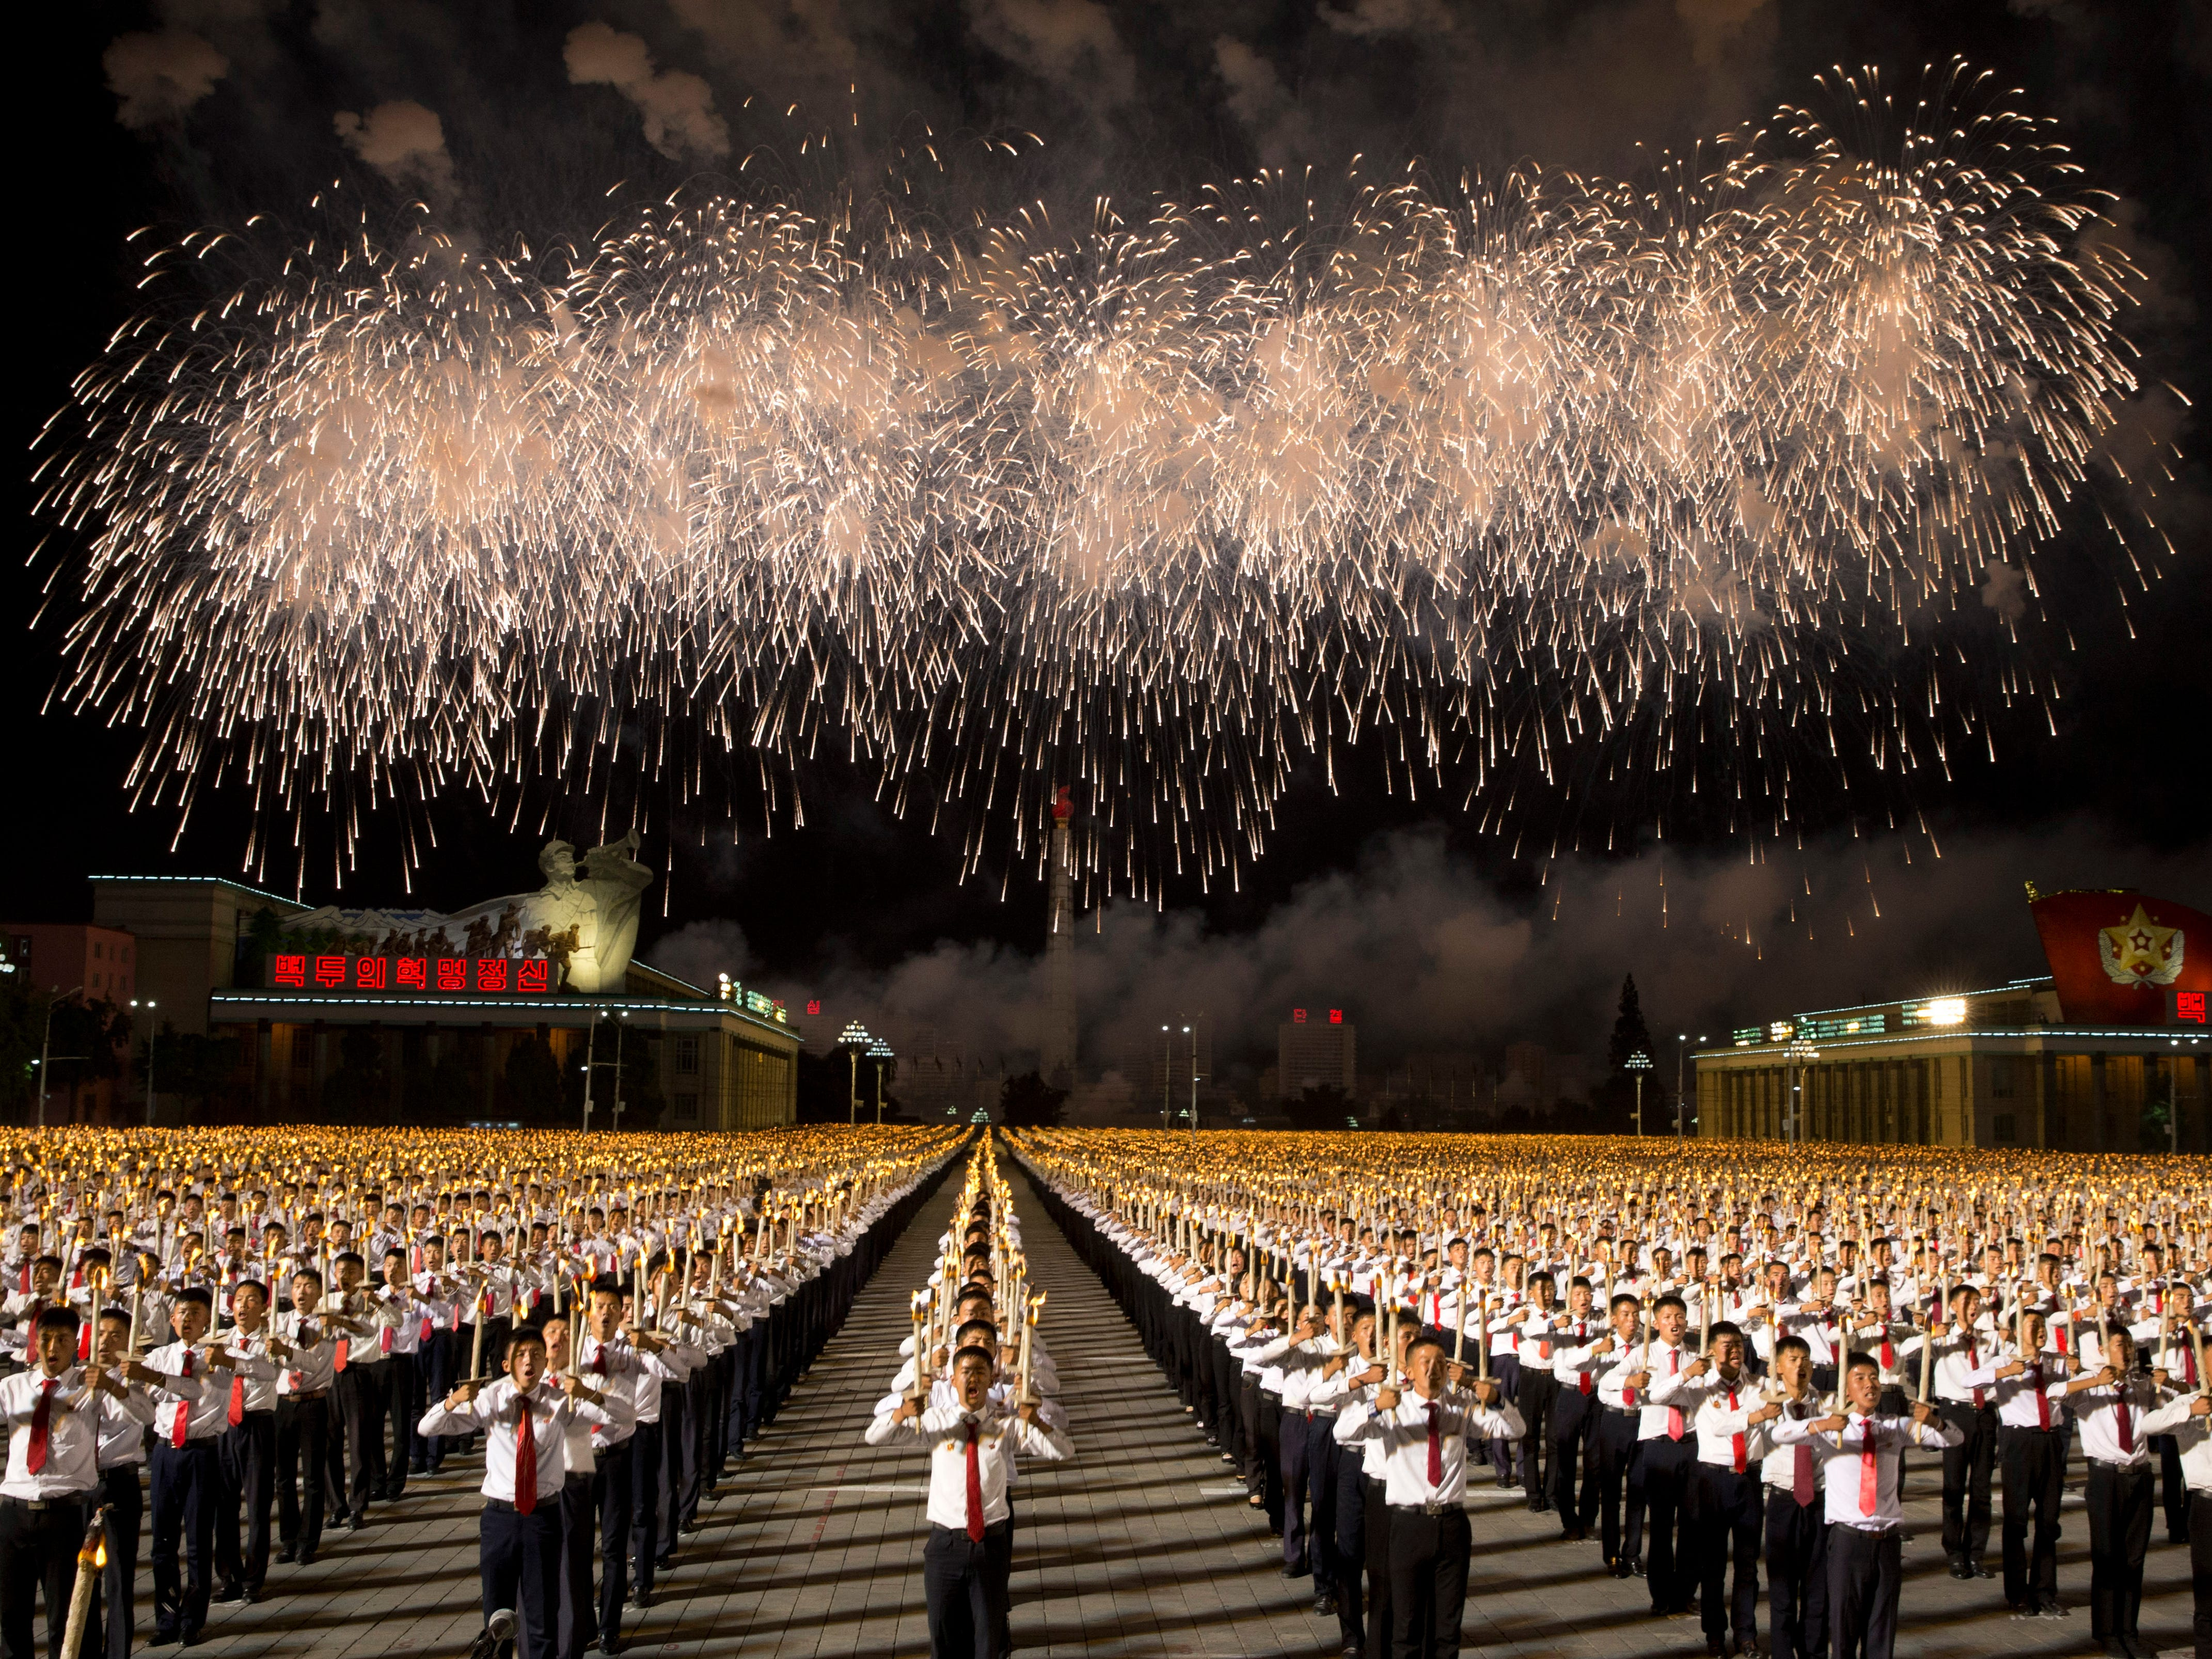 North Korean students take part in a torch light march held in conjunction with the 70th anniversary of North Korea's founding day celebrations in Pyongyang, North Korea, Monday, Sept. 10, 2018.